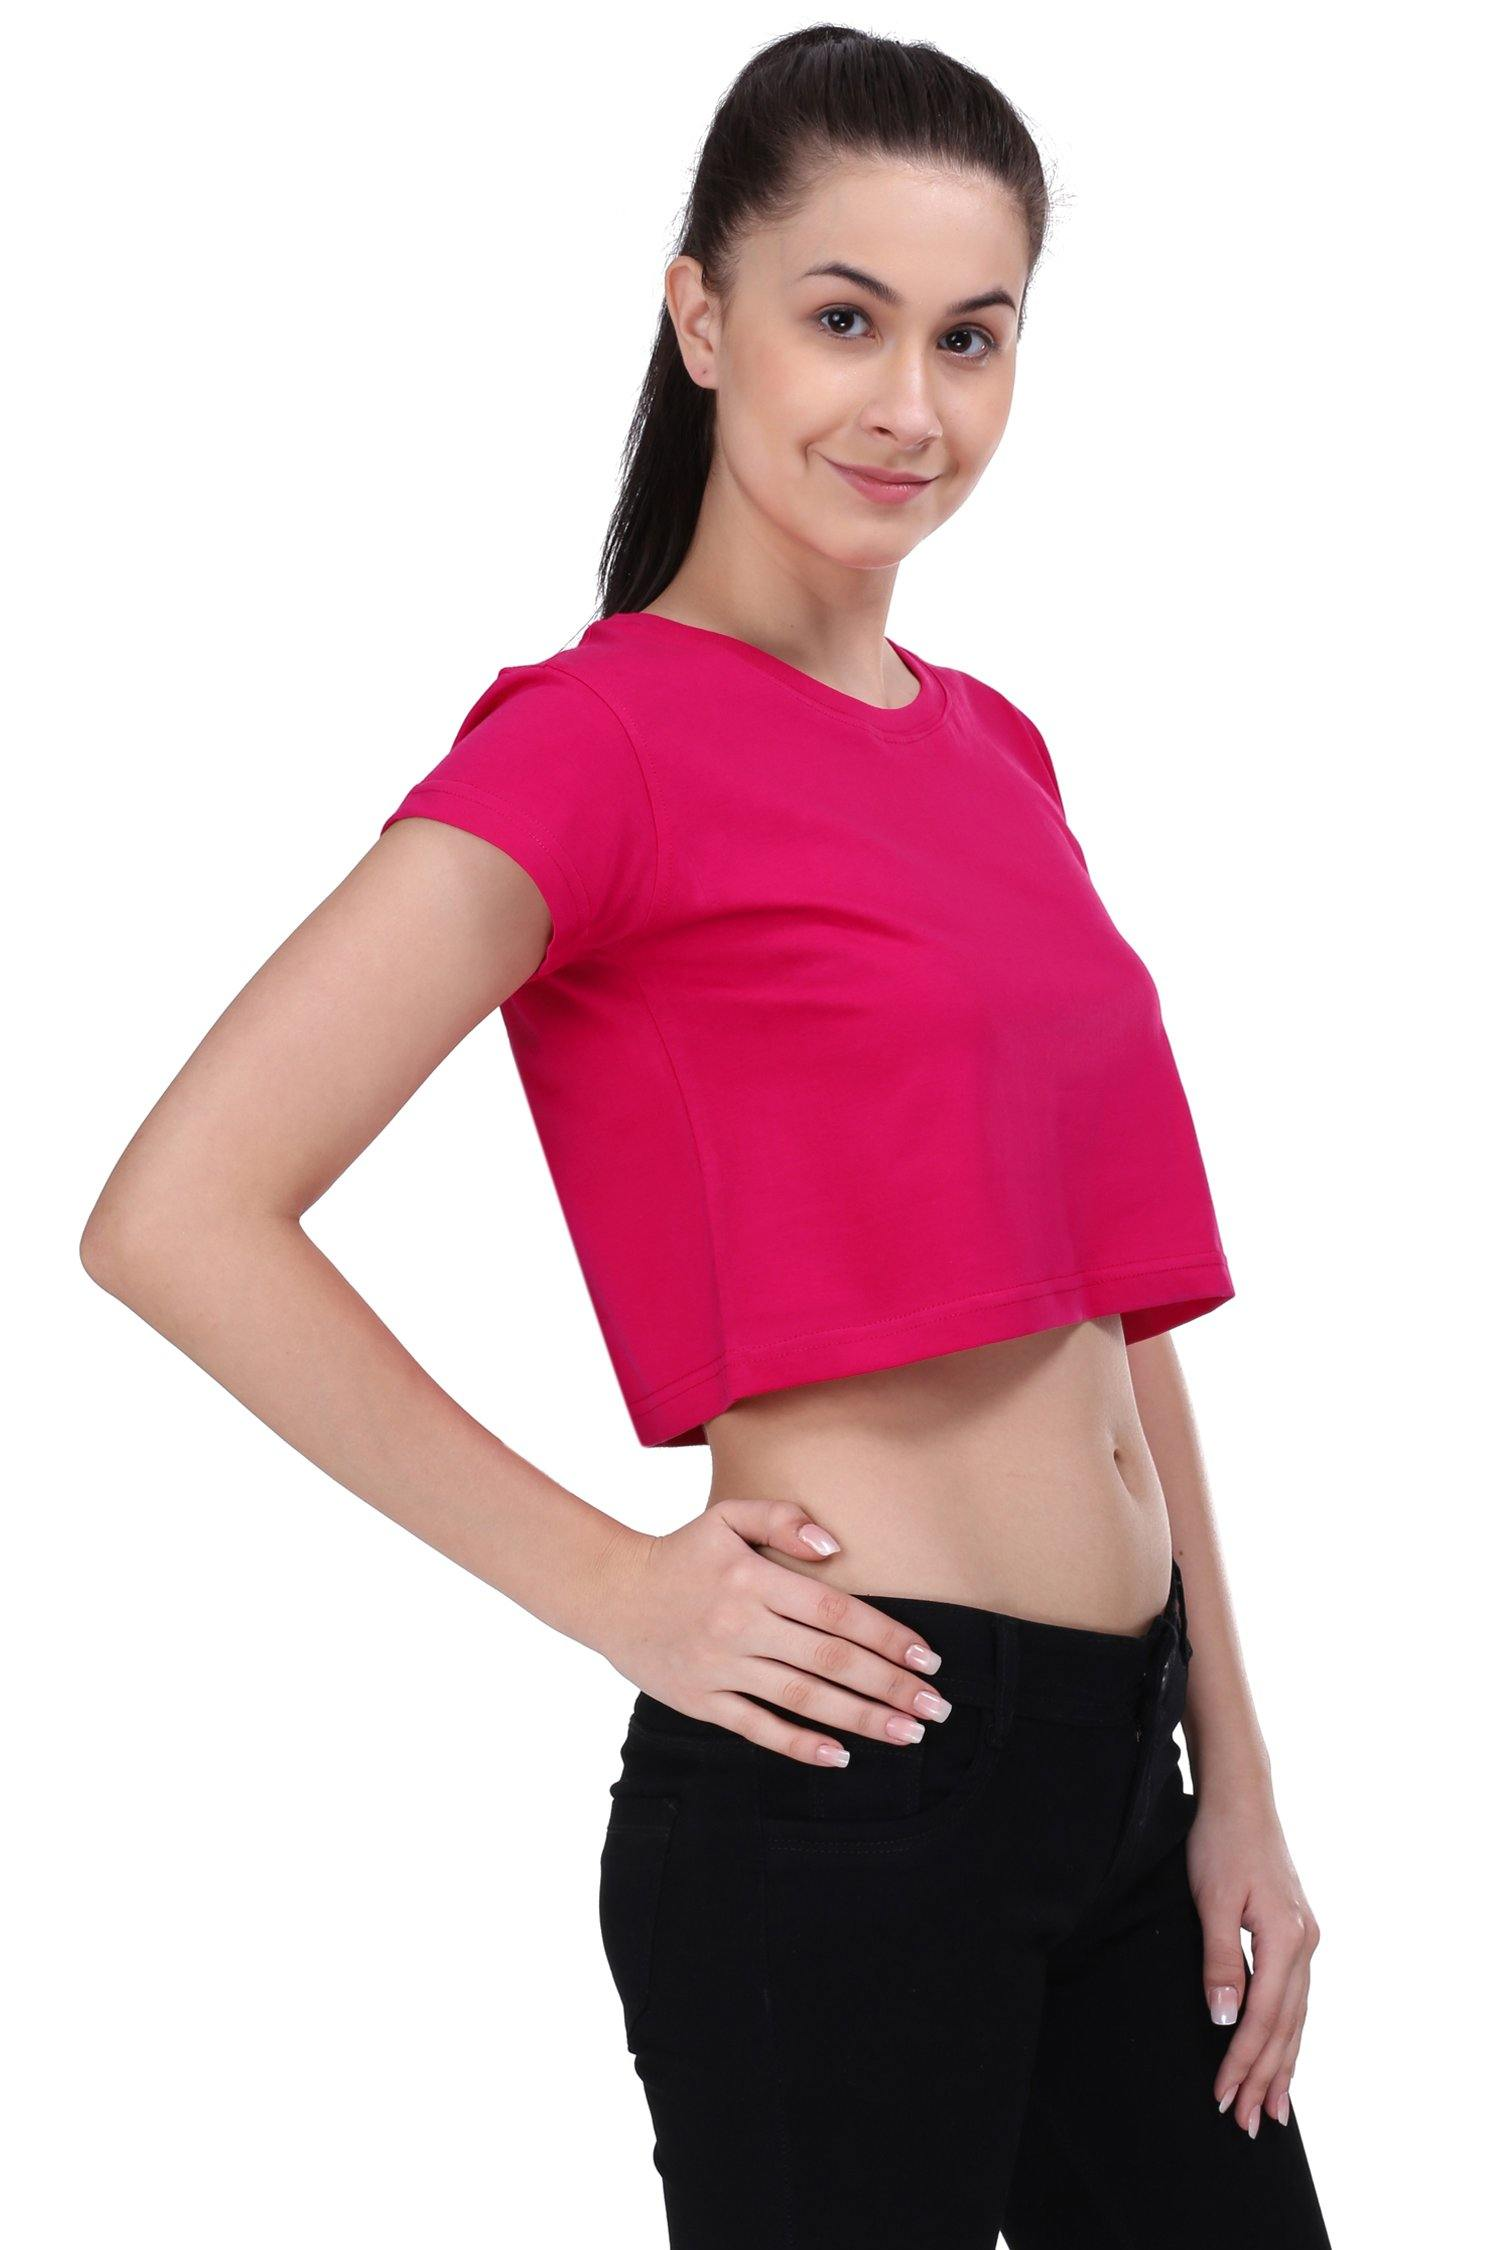 Premium Quality Plain Rani Pink Color Crop Top - thewardrobe-store-in